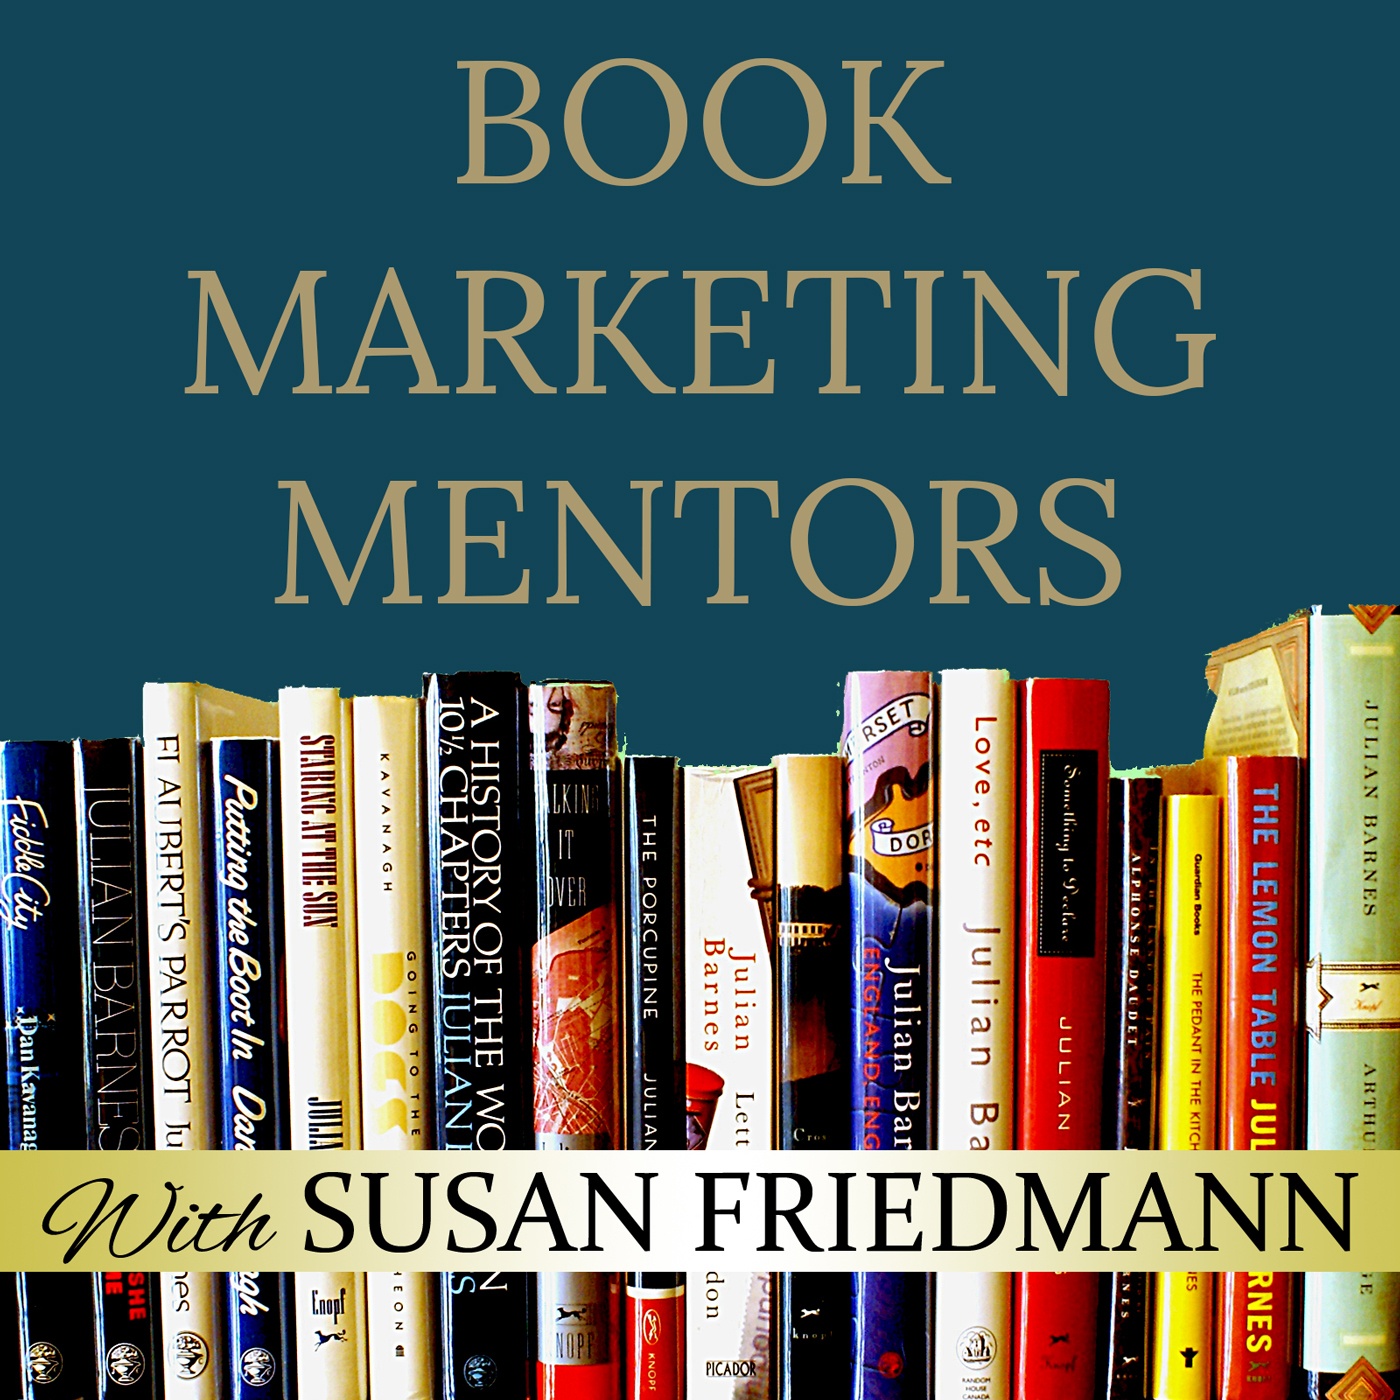 Book Marketing Mentors